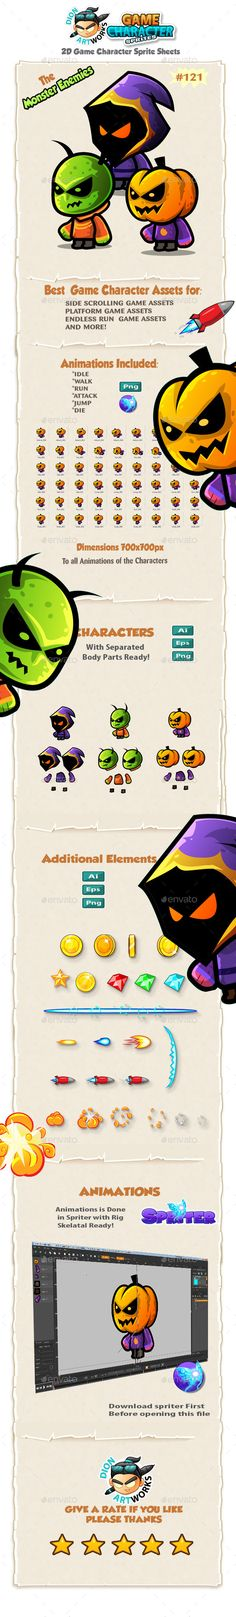 Monster Enemies 2D Game Character Sprites 121 — Vector EPS #halloween #monsters • Available here → https://graphicriver.net/item/monster-enemies-2d-game-character-sprites-121/13245255?ref=pxcr